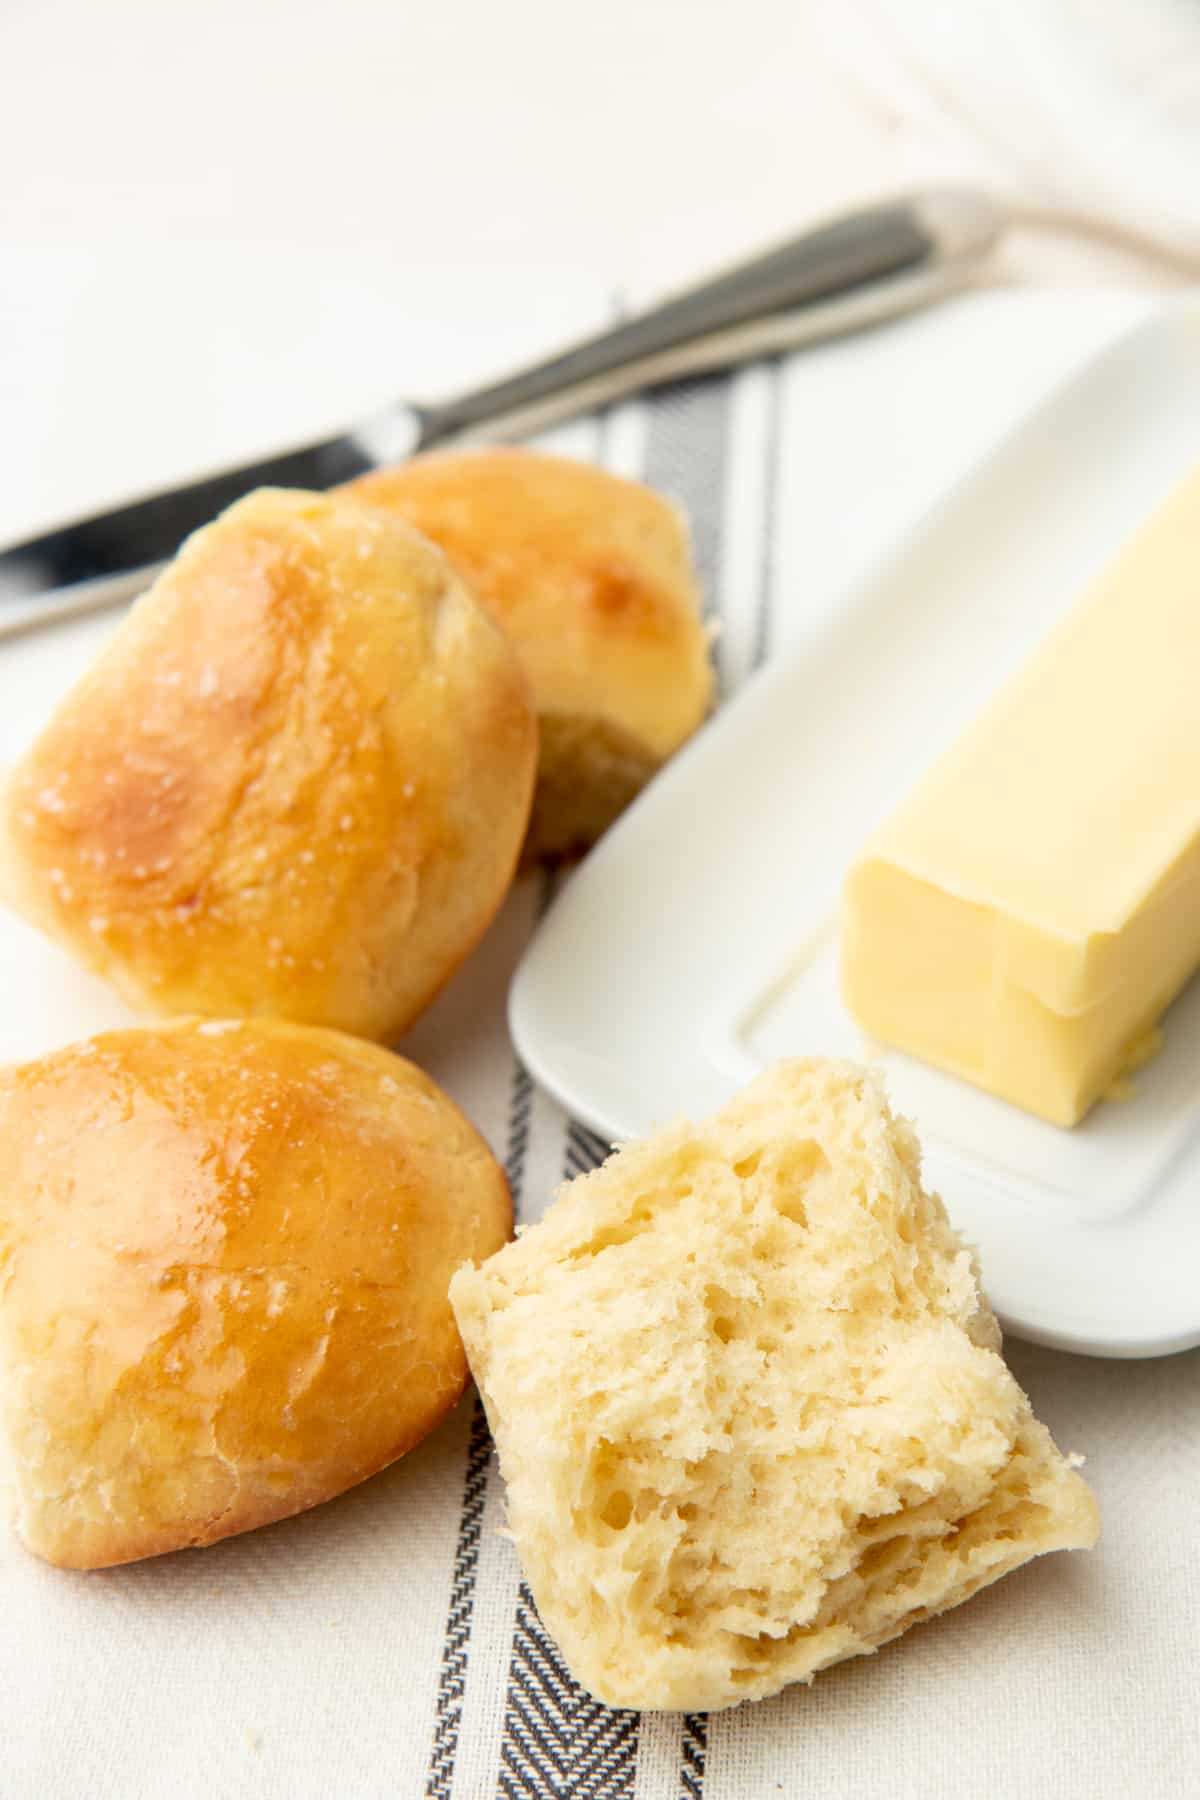 A cut roll sits next to whole rolls and a dish of butter.